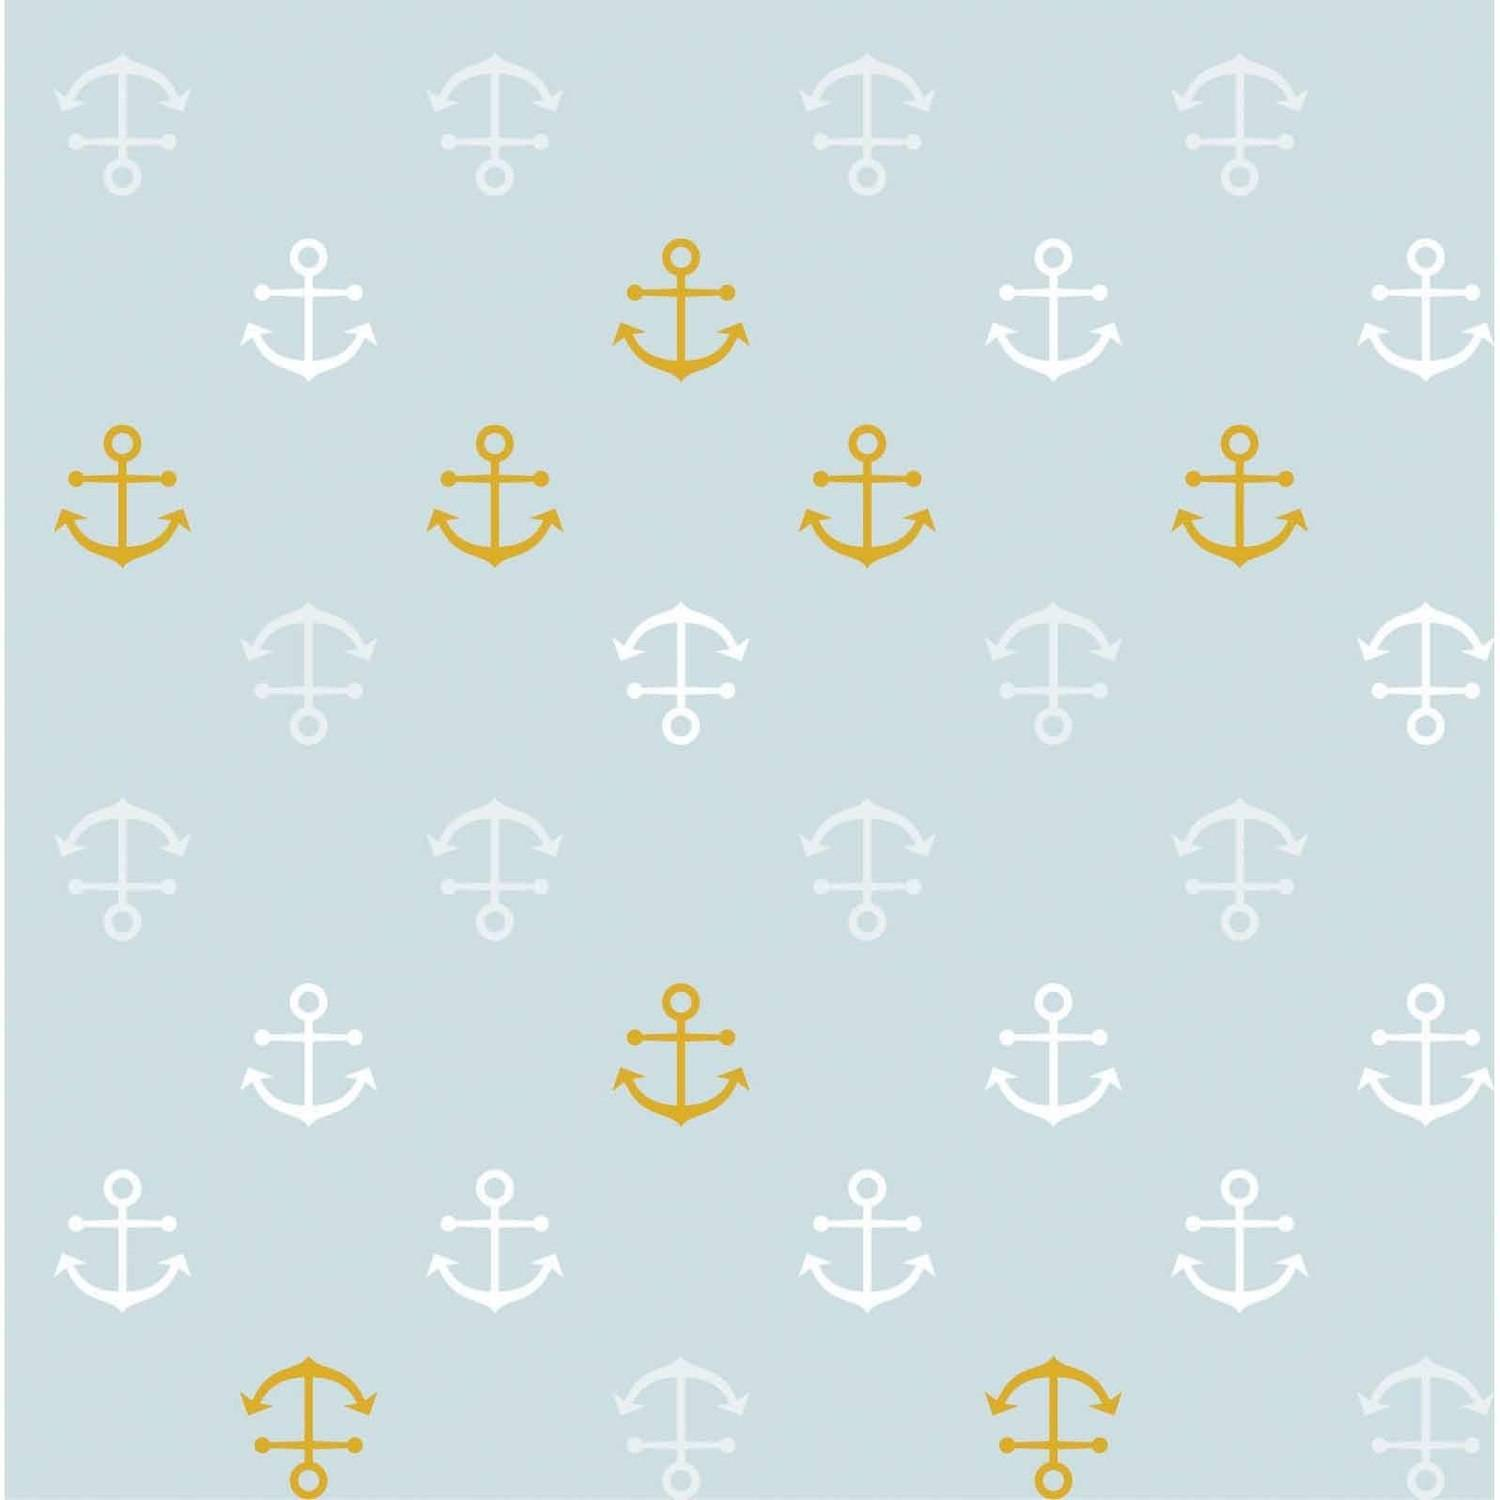 RTC Fabric Blue Anchor 70% Bamboo Rayon, 30% Cotton, Quilting fabric,Apparel fabric, Home Decor fabric,42'', 180GSM